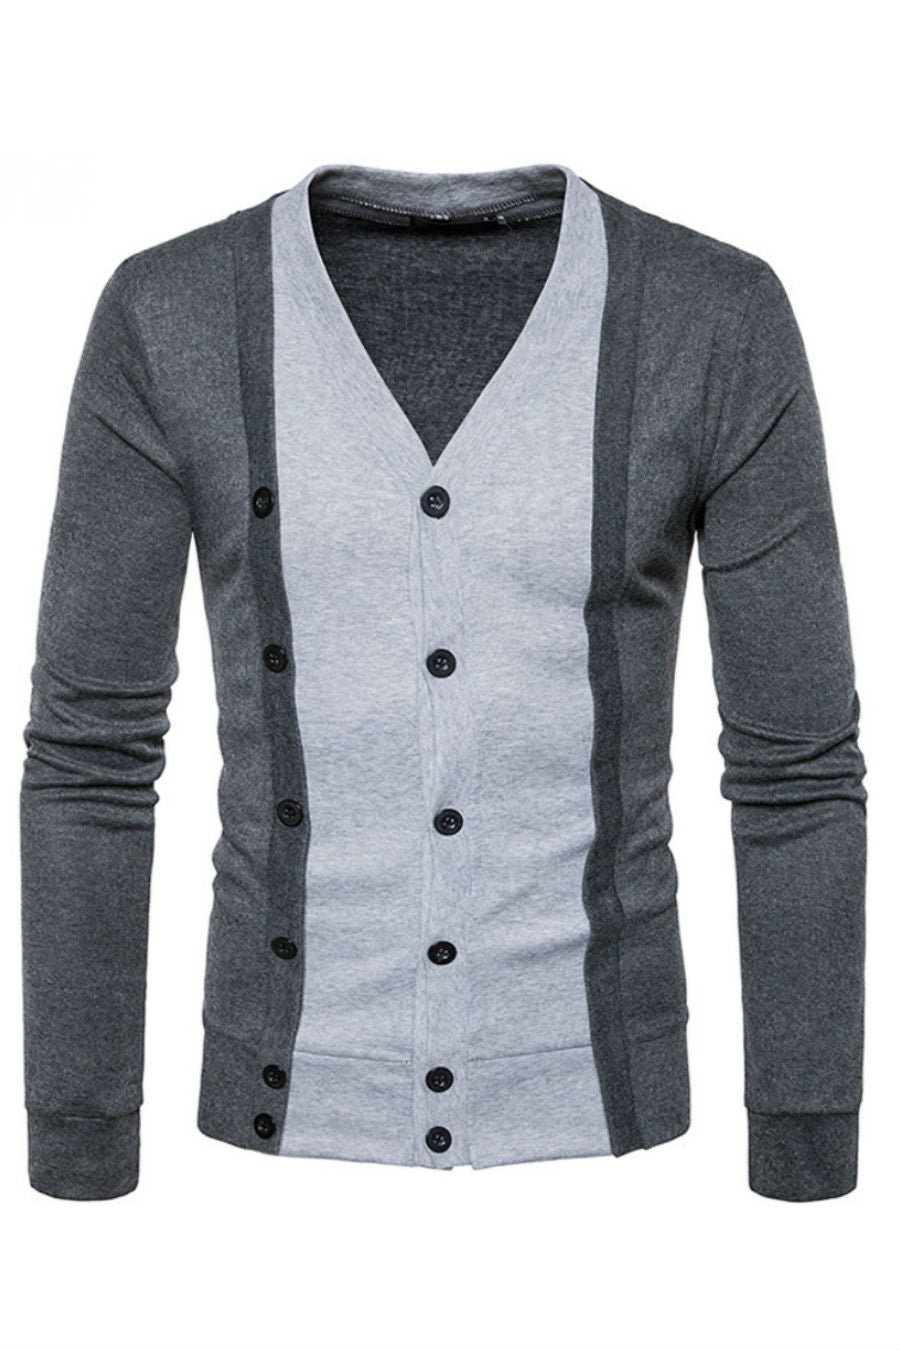 Grey Button Up Cardigan